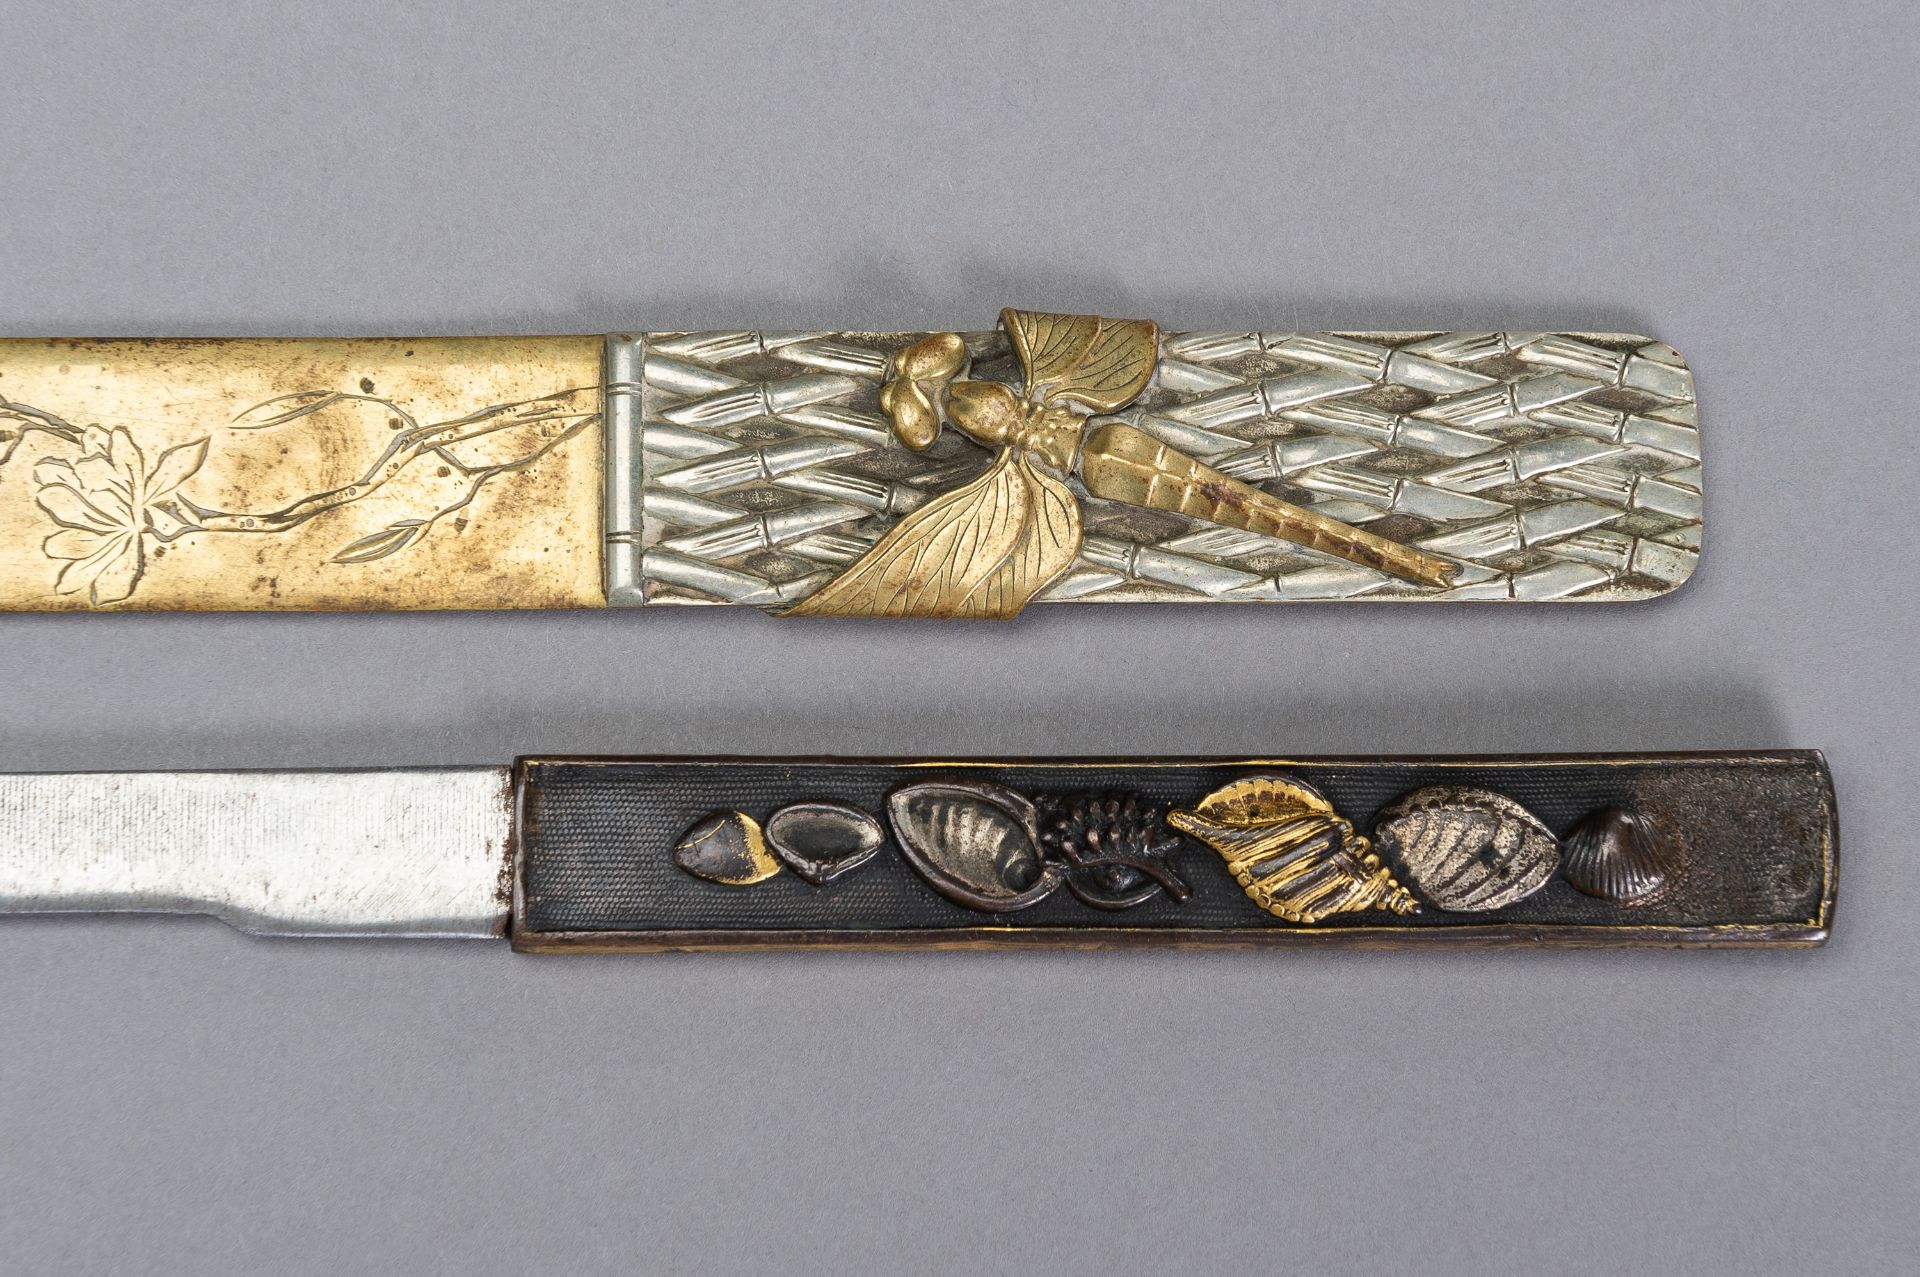 A COPPER KOZUKA WITH BLADE AND A SENTOKU PAGE TURNER WITH DRAGONFLY - Image 6 of 7